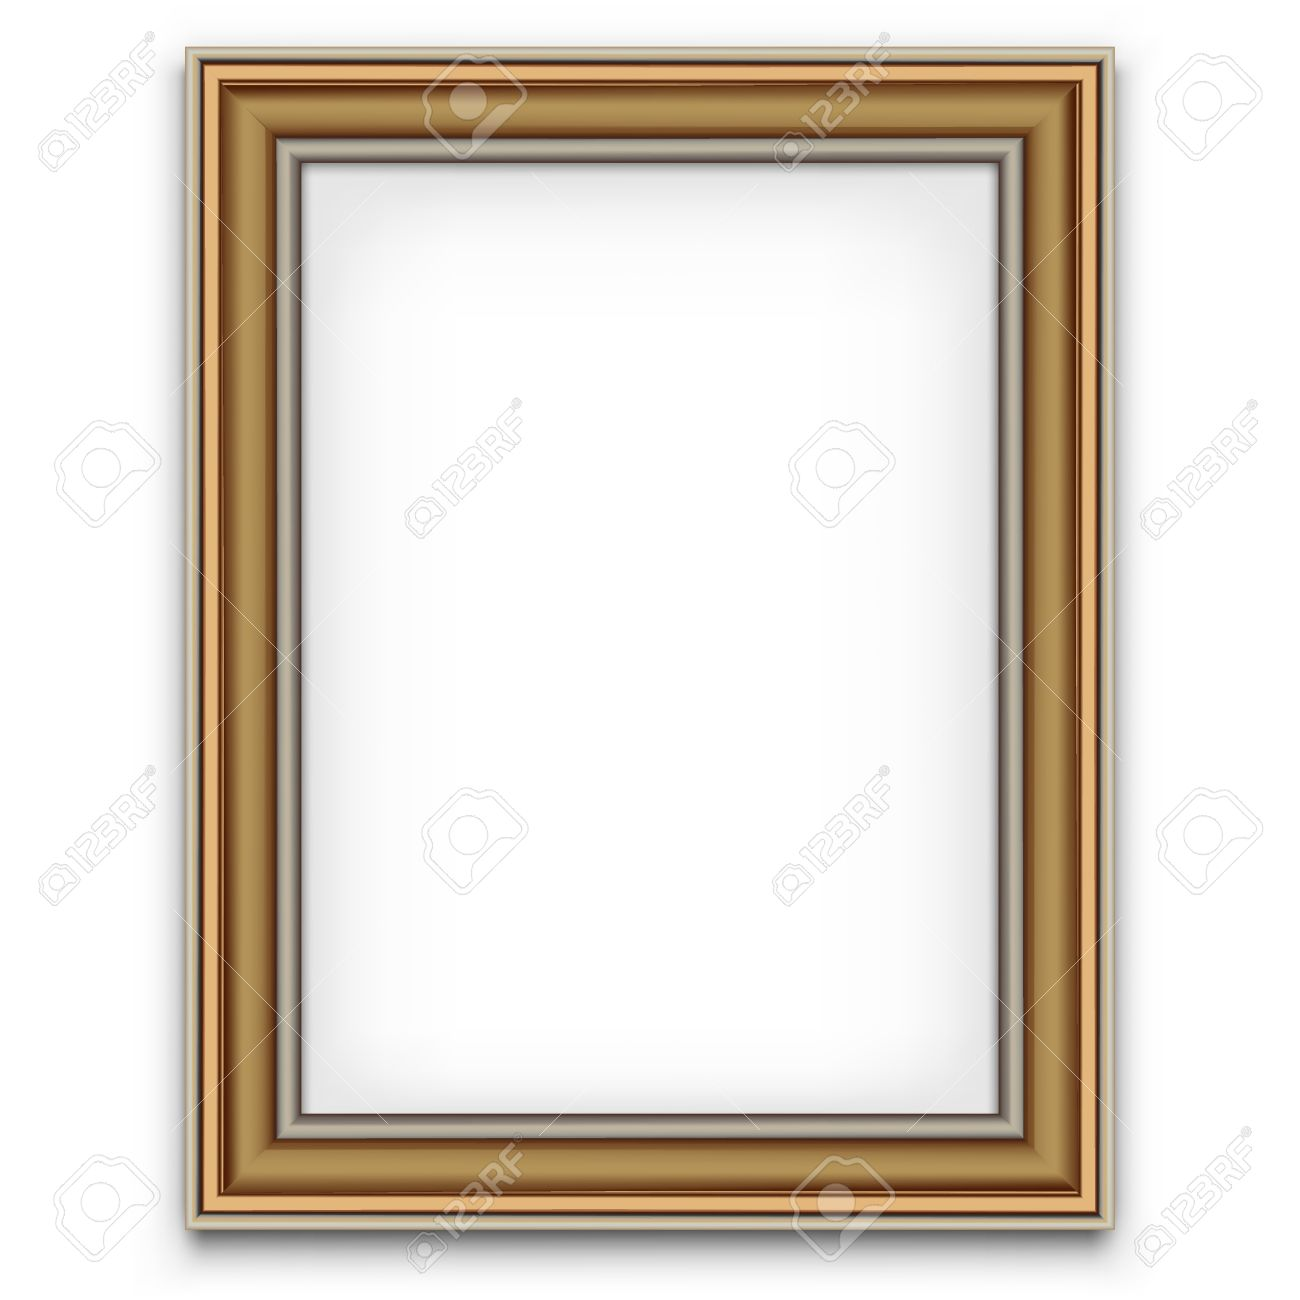 Blank Picture Frame Vector Decoration Element Photo Template